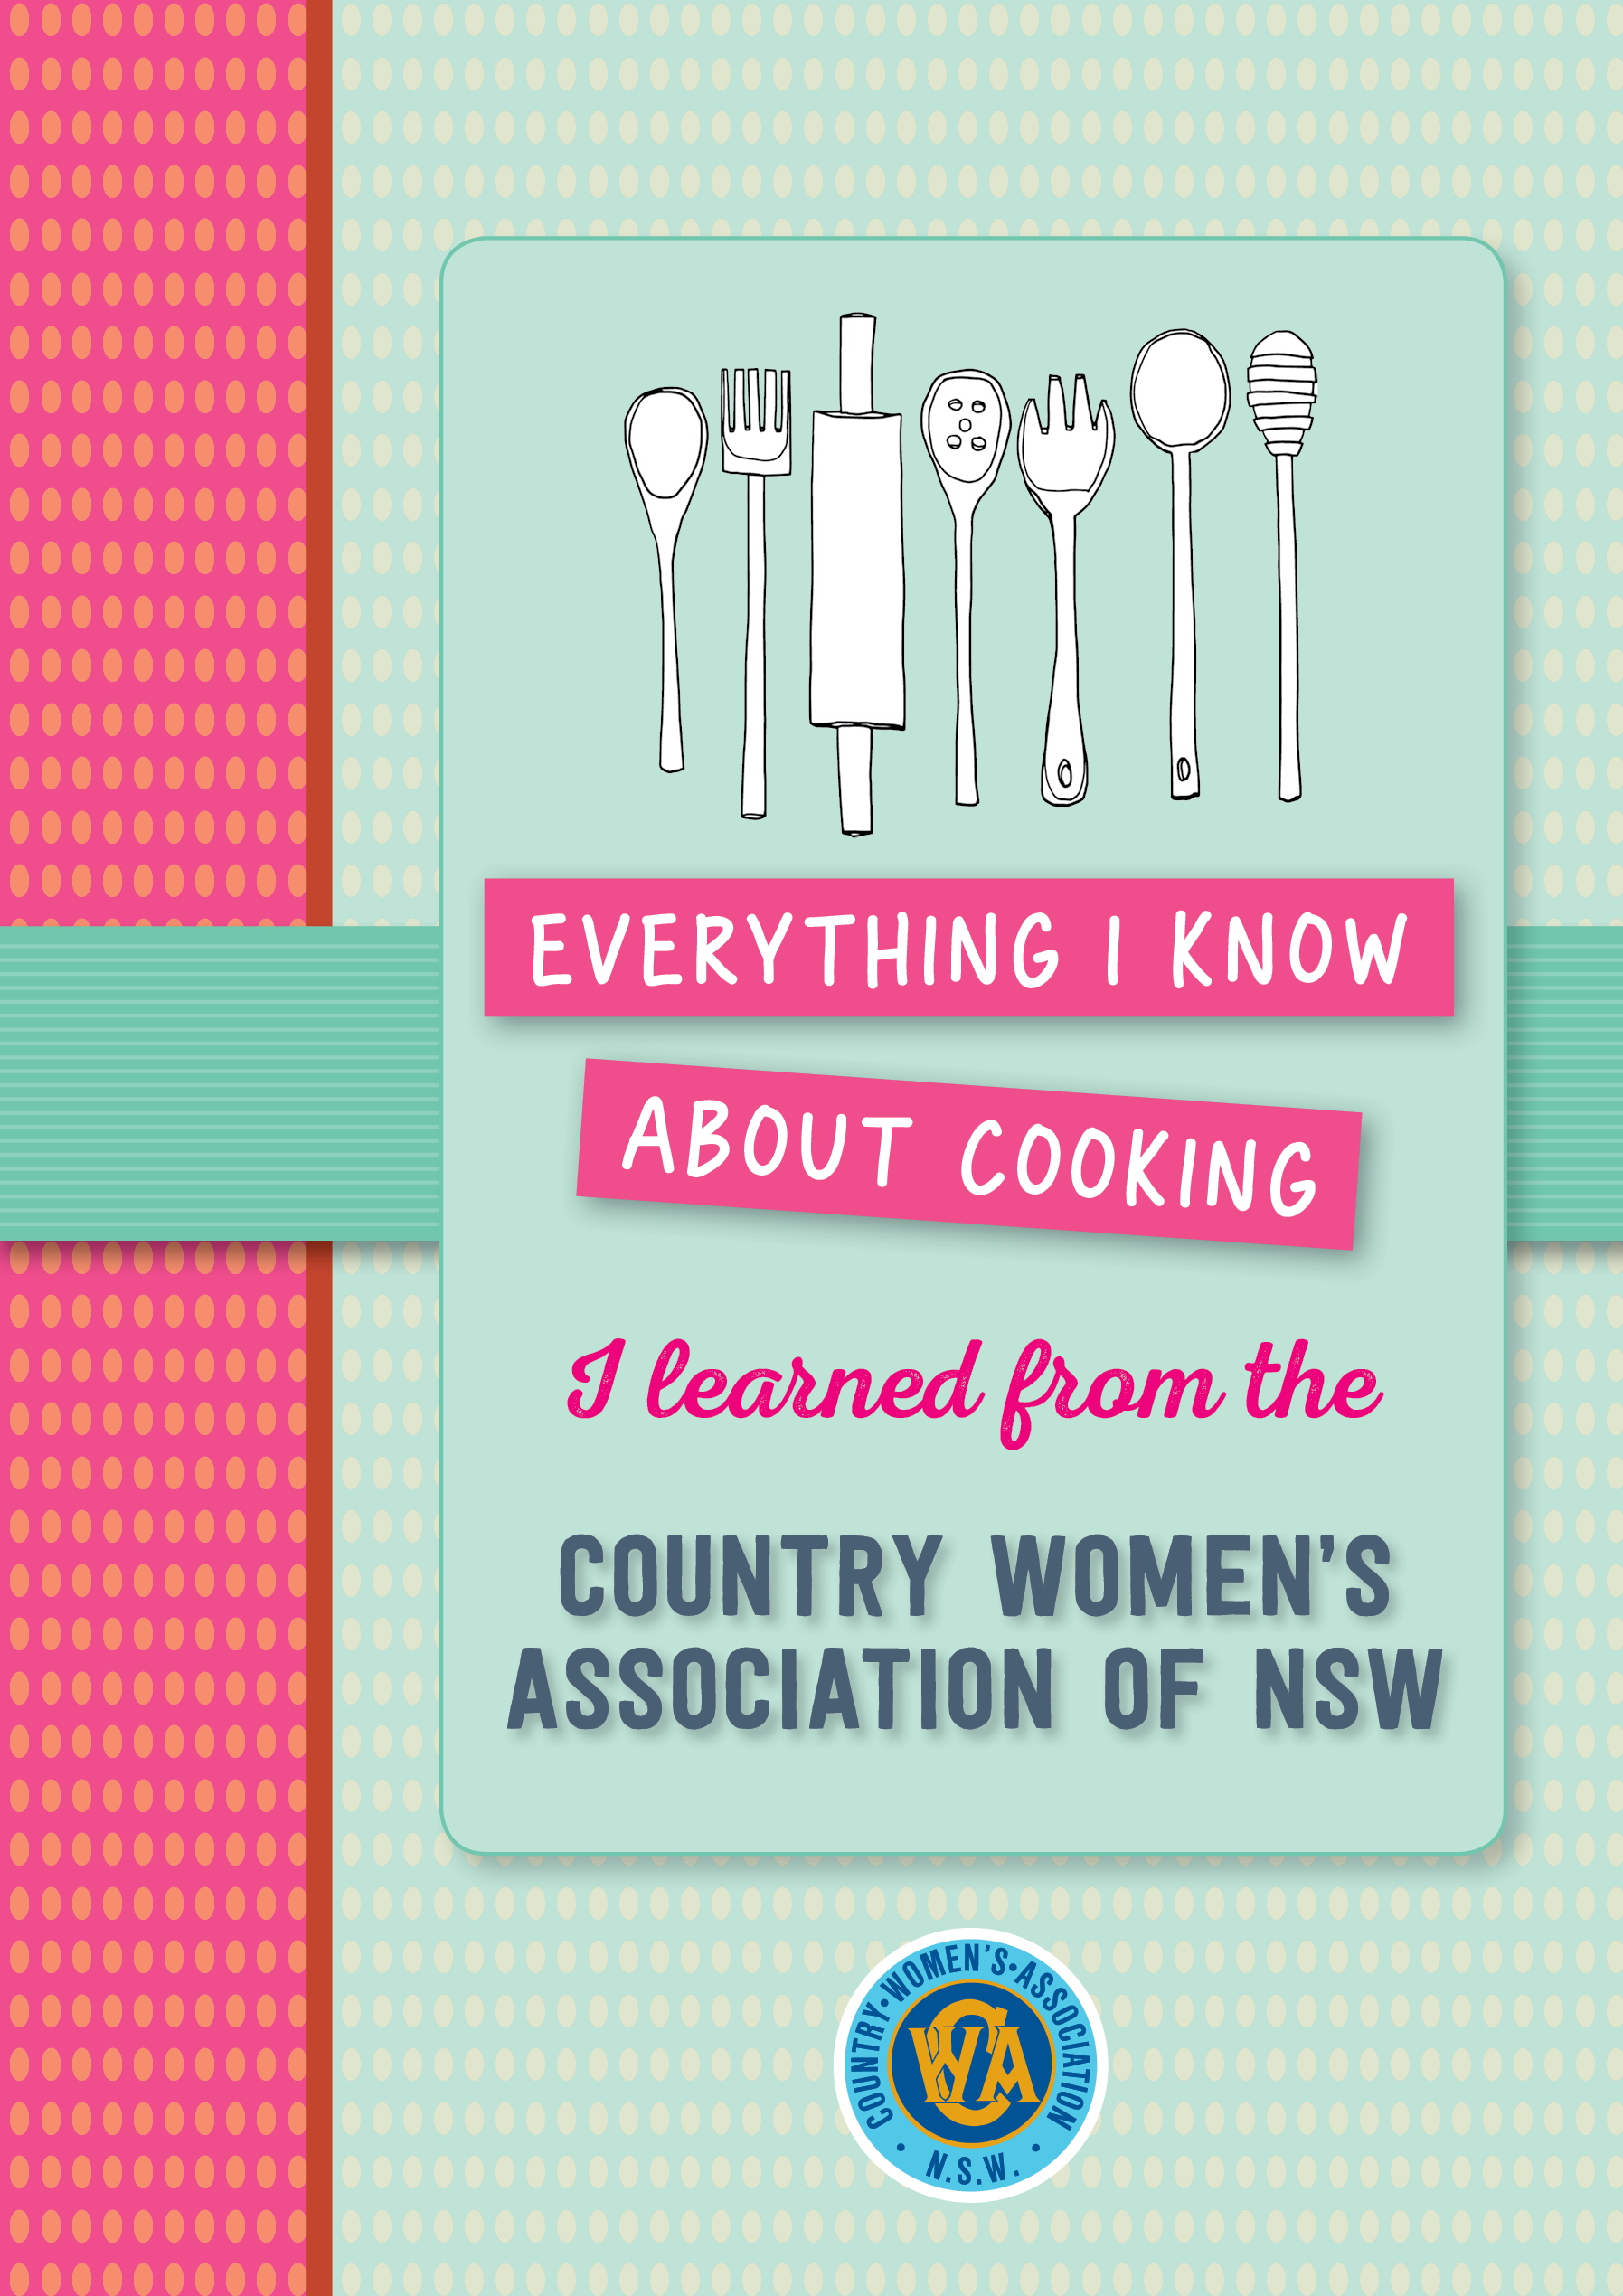 - The latest cookbook from the Country Women's Association of NSW (CWA) has just been released.With tried and true recipes for a perfect sausage roll snack, a succulent Greek-style roast chicken for dinner or honeycomb cheesecake slice for dessert,Everything I know about cooking I learned from the CWA is the perfect kitchen companion, in a deceptively small format.